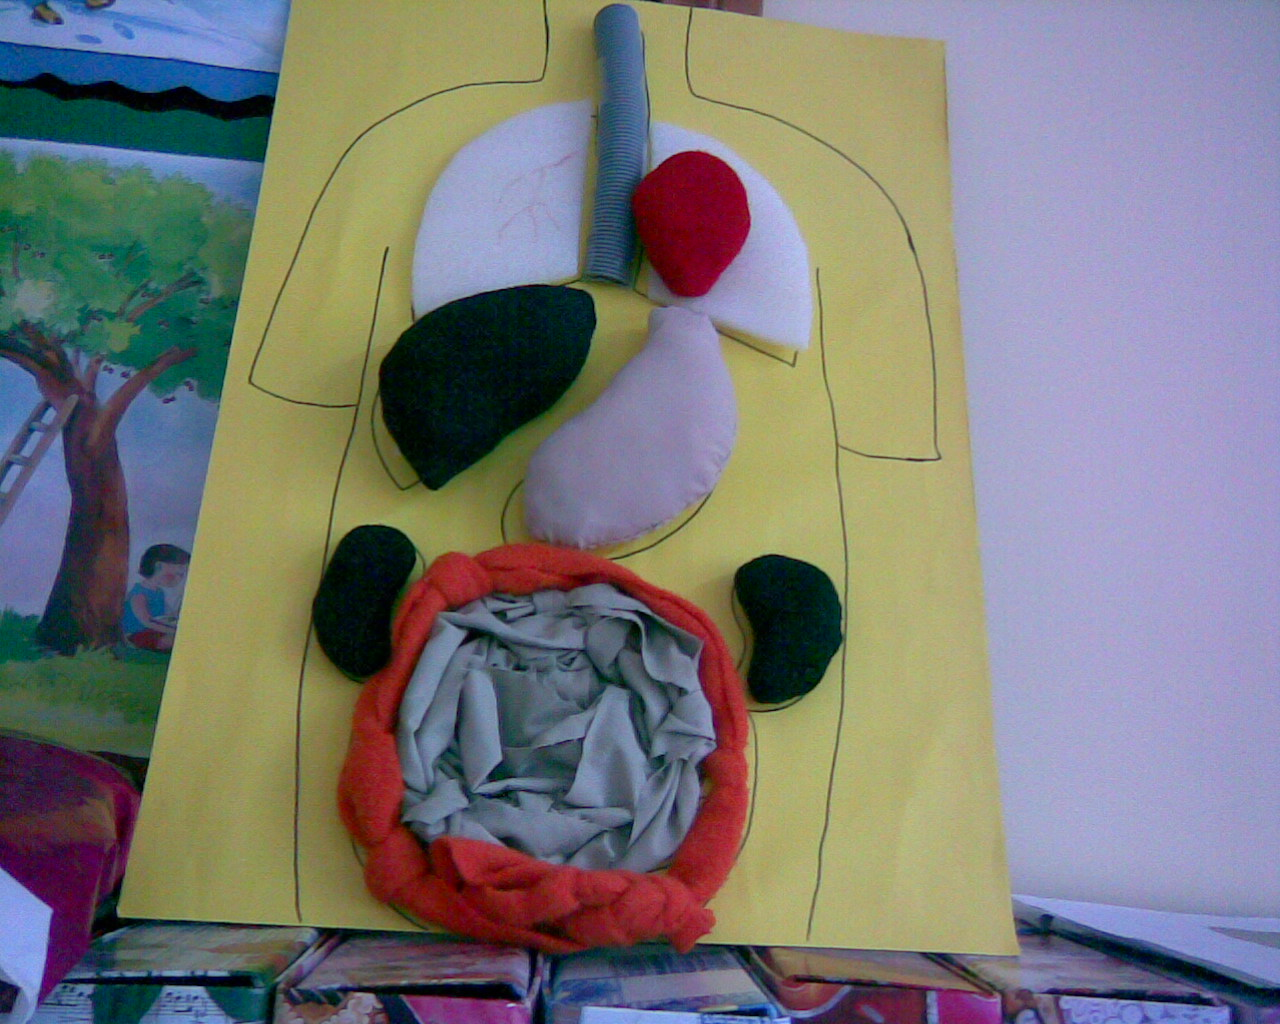 Human Body Crafts Idea For Kindergarten And Homeschool